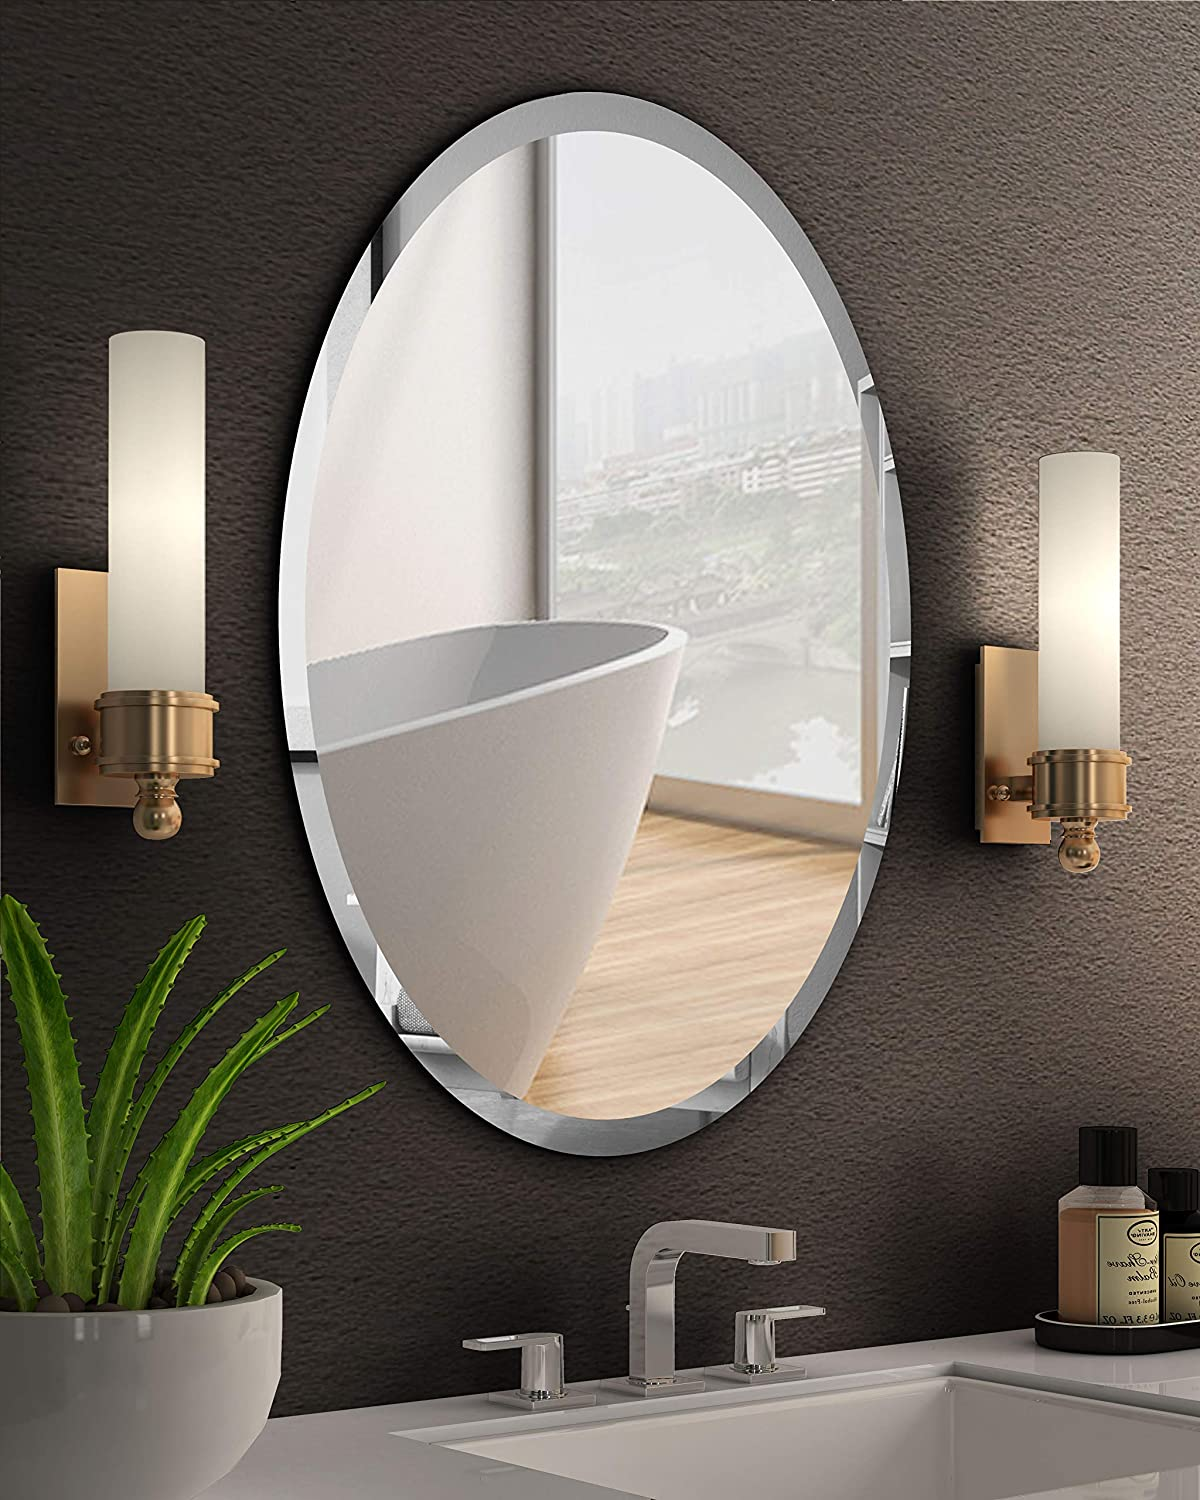 Amazon Com Kohros Oval Beveled Polished Frameless Wall Mirror For Bathroom Vanity Bedroom 20 W X 28 H Oval Home Kitchen